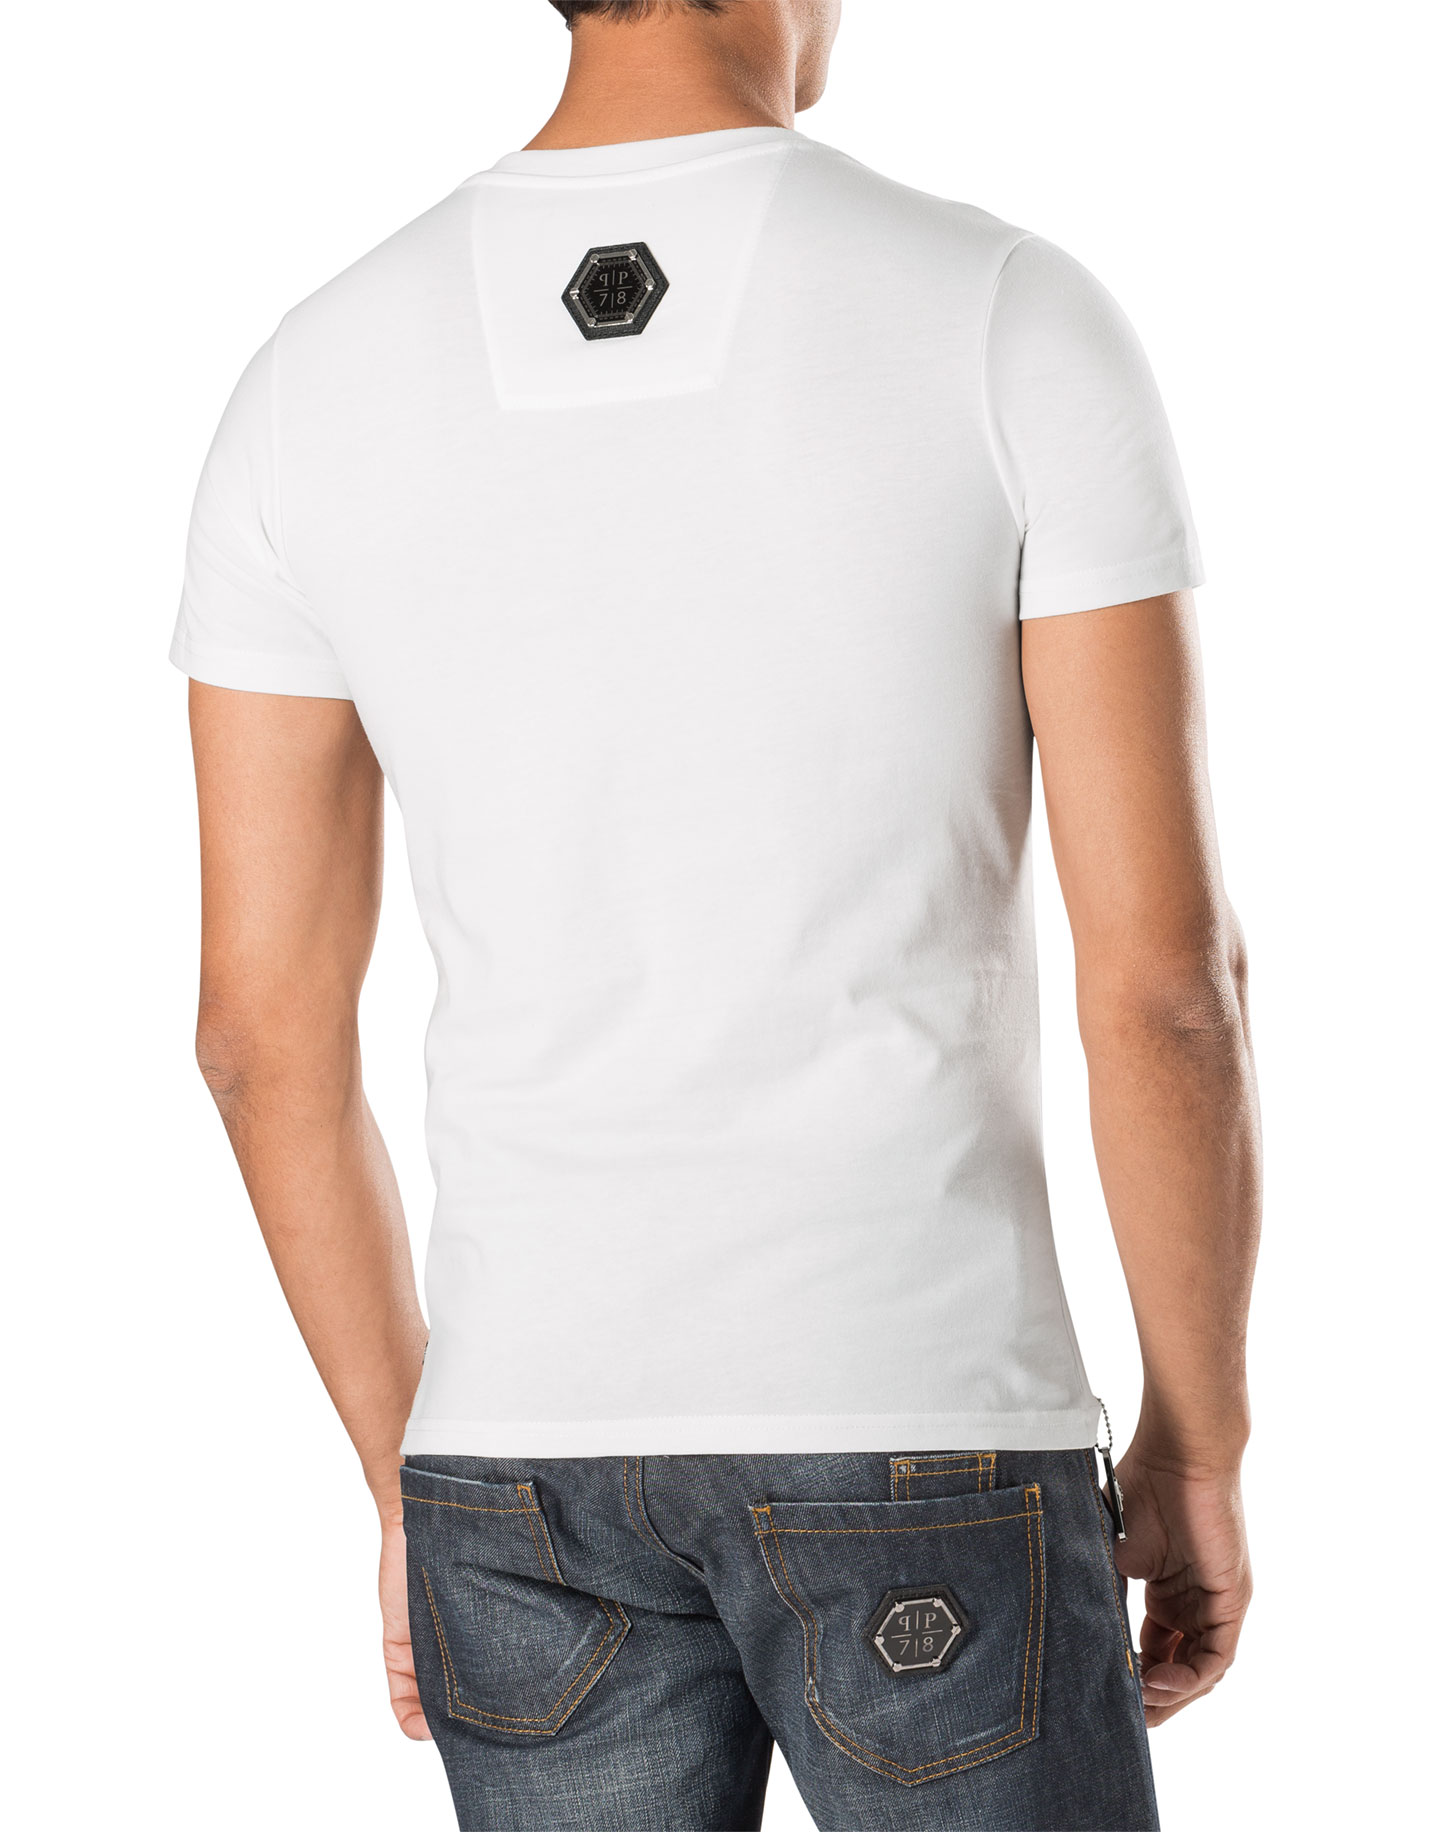 T shirt v neck money maker philipp plein outlet for How to make money selling custom t shirts